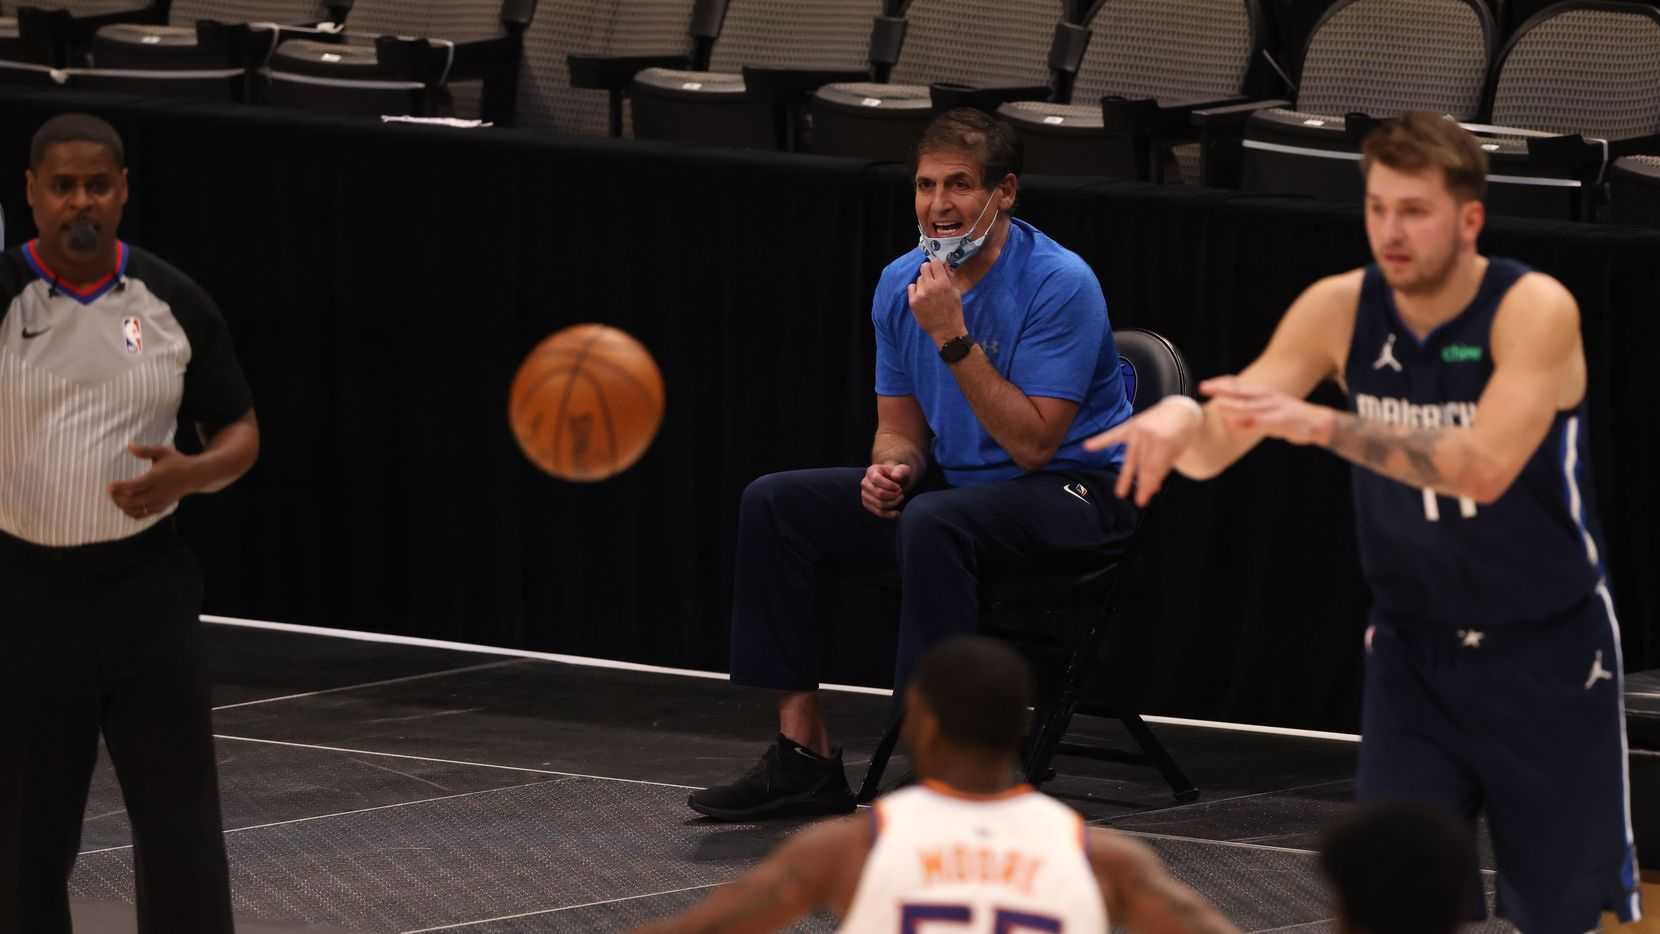 Dallas Mavericks owner Mark Cuban talks from the sideline in a game against the Phoenix Suns during the first quarter of play at American Airlines Center on Monday, February 1, 2021in Dallas.